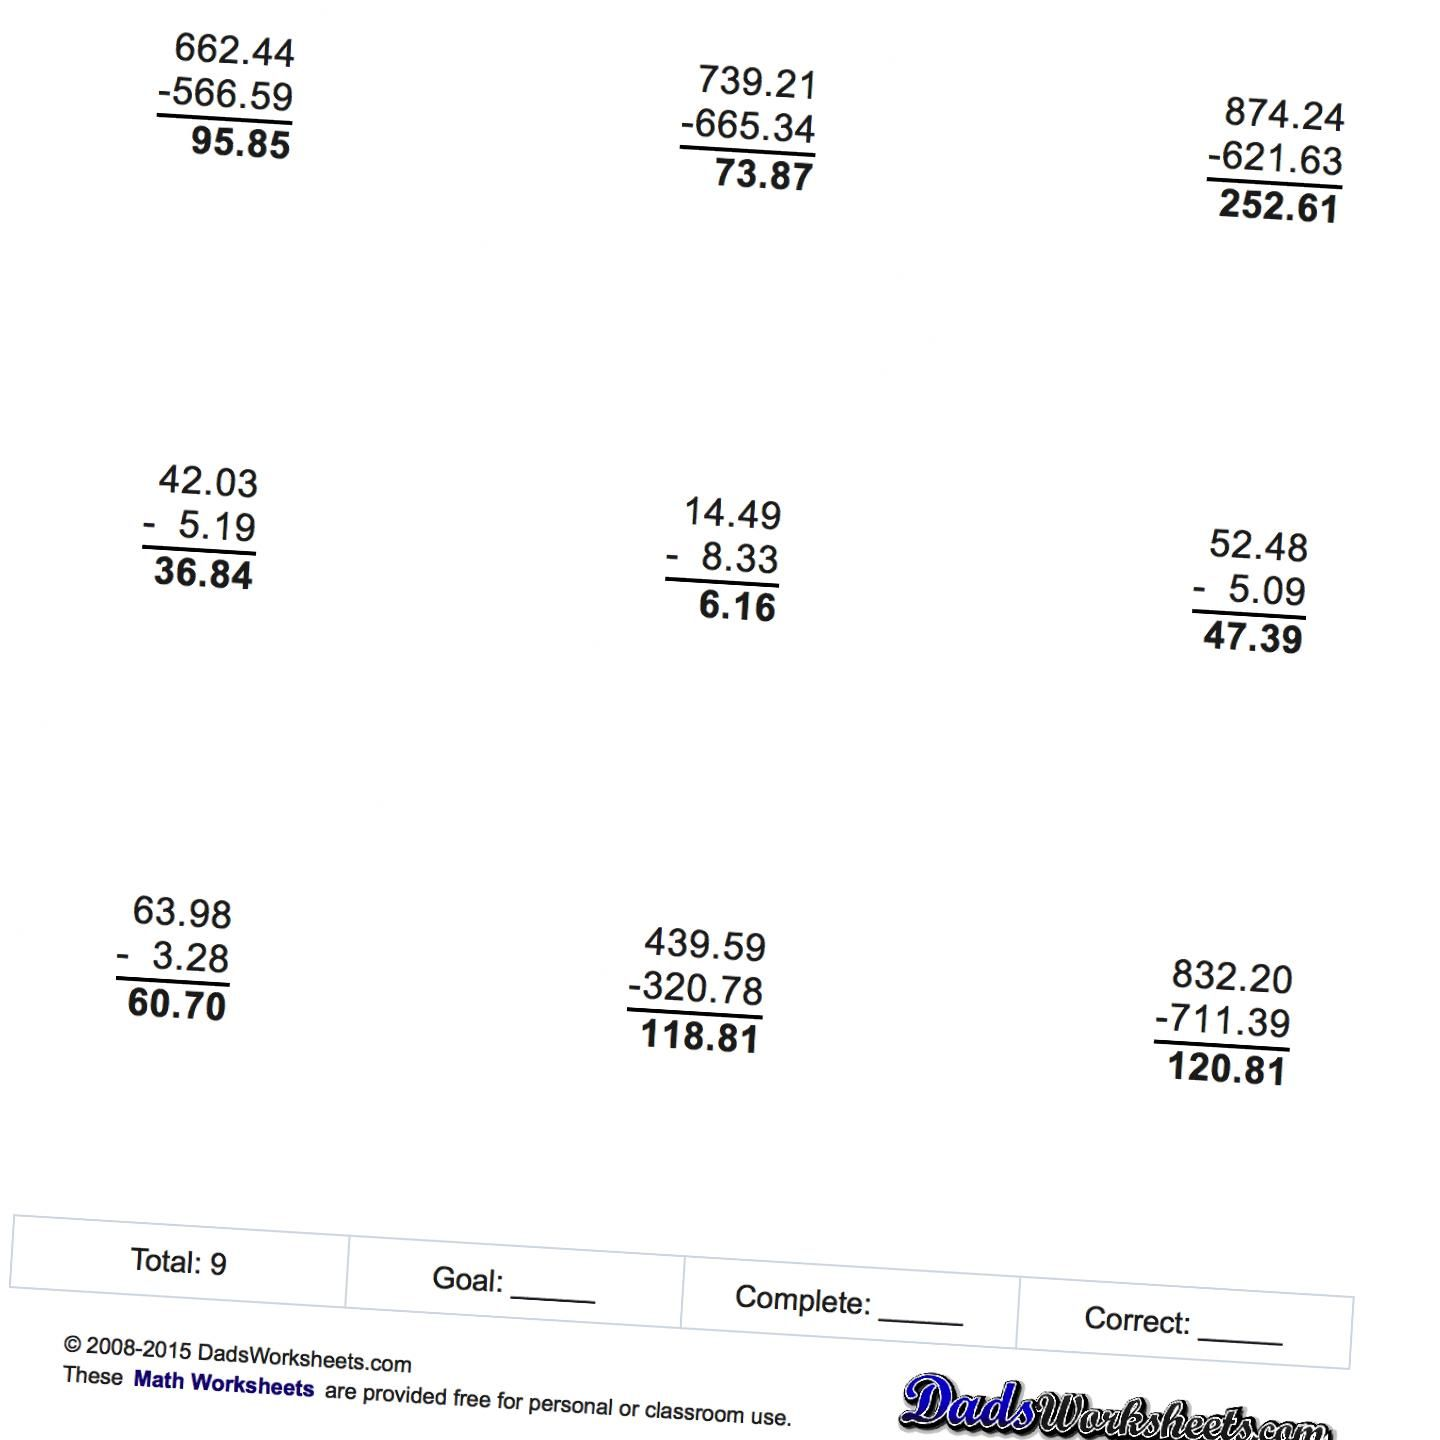 Math Worksheets Subtraction With Decimals Math Worksheets Worksheets Free Printable Math Worksheets